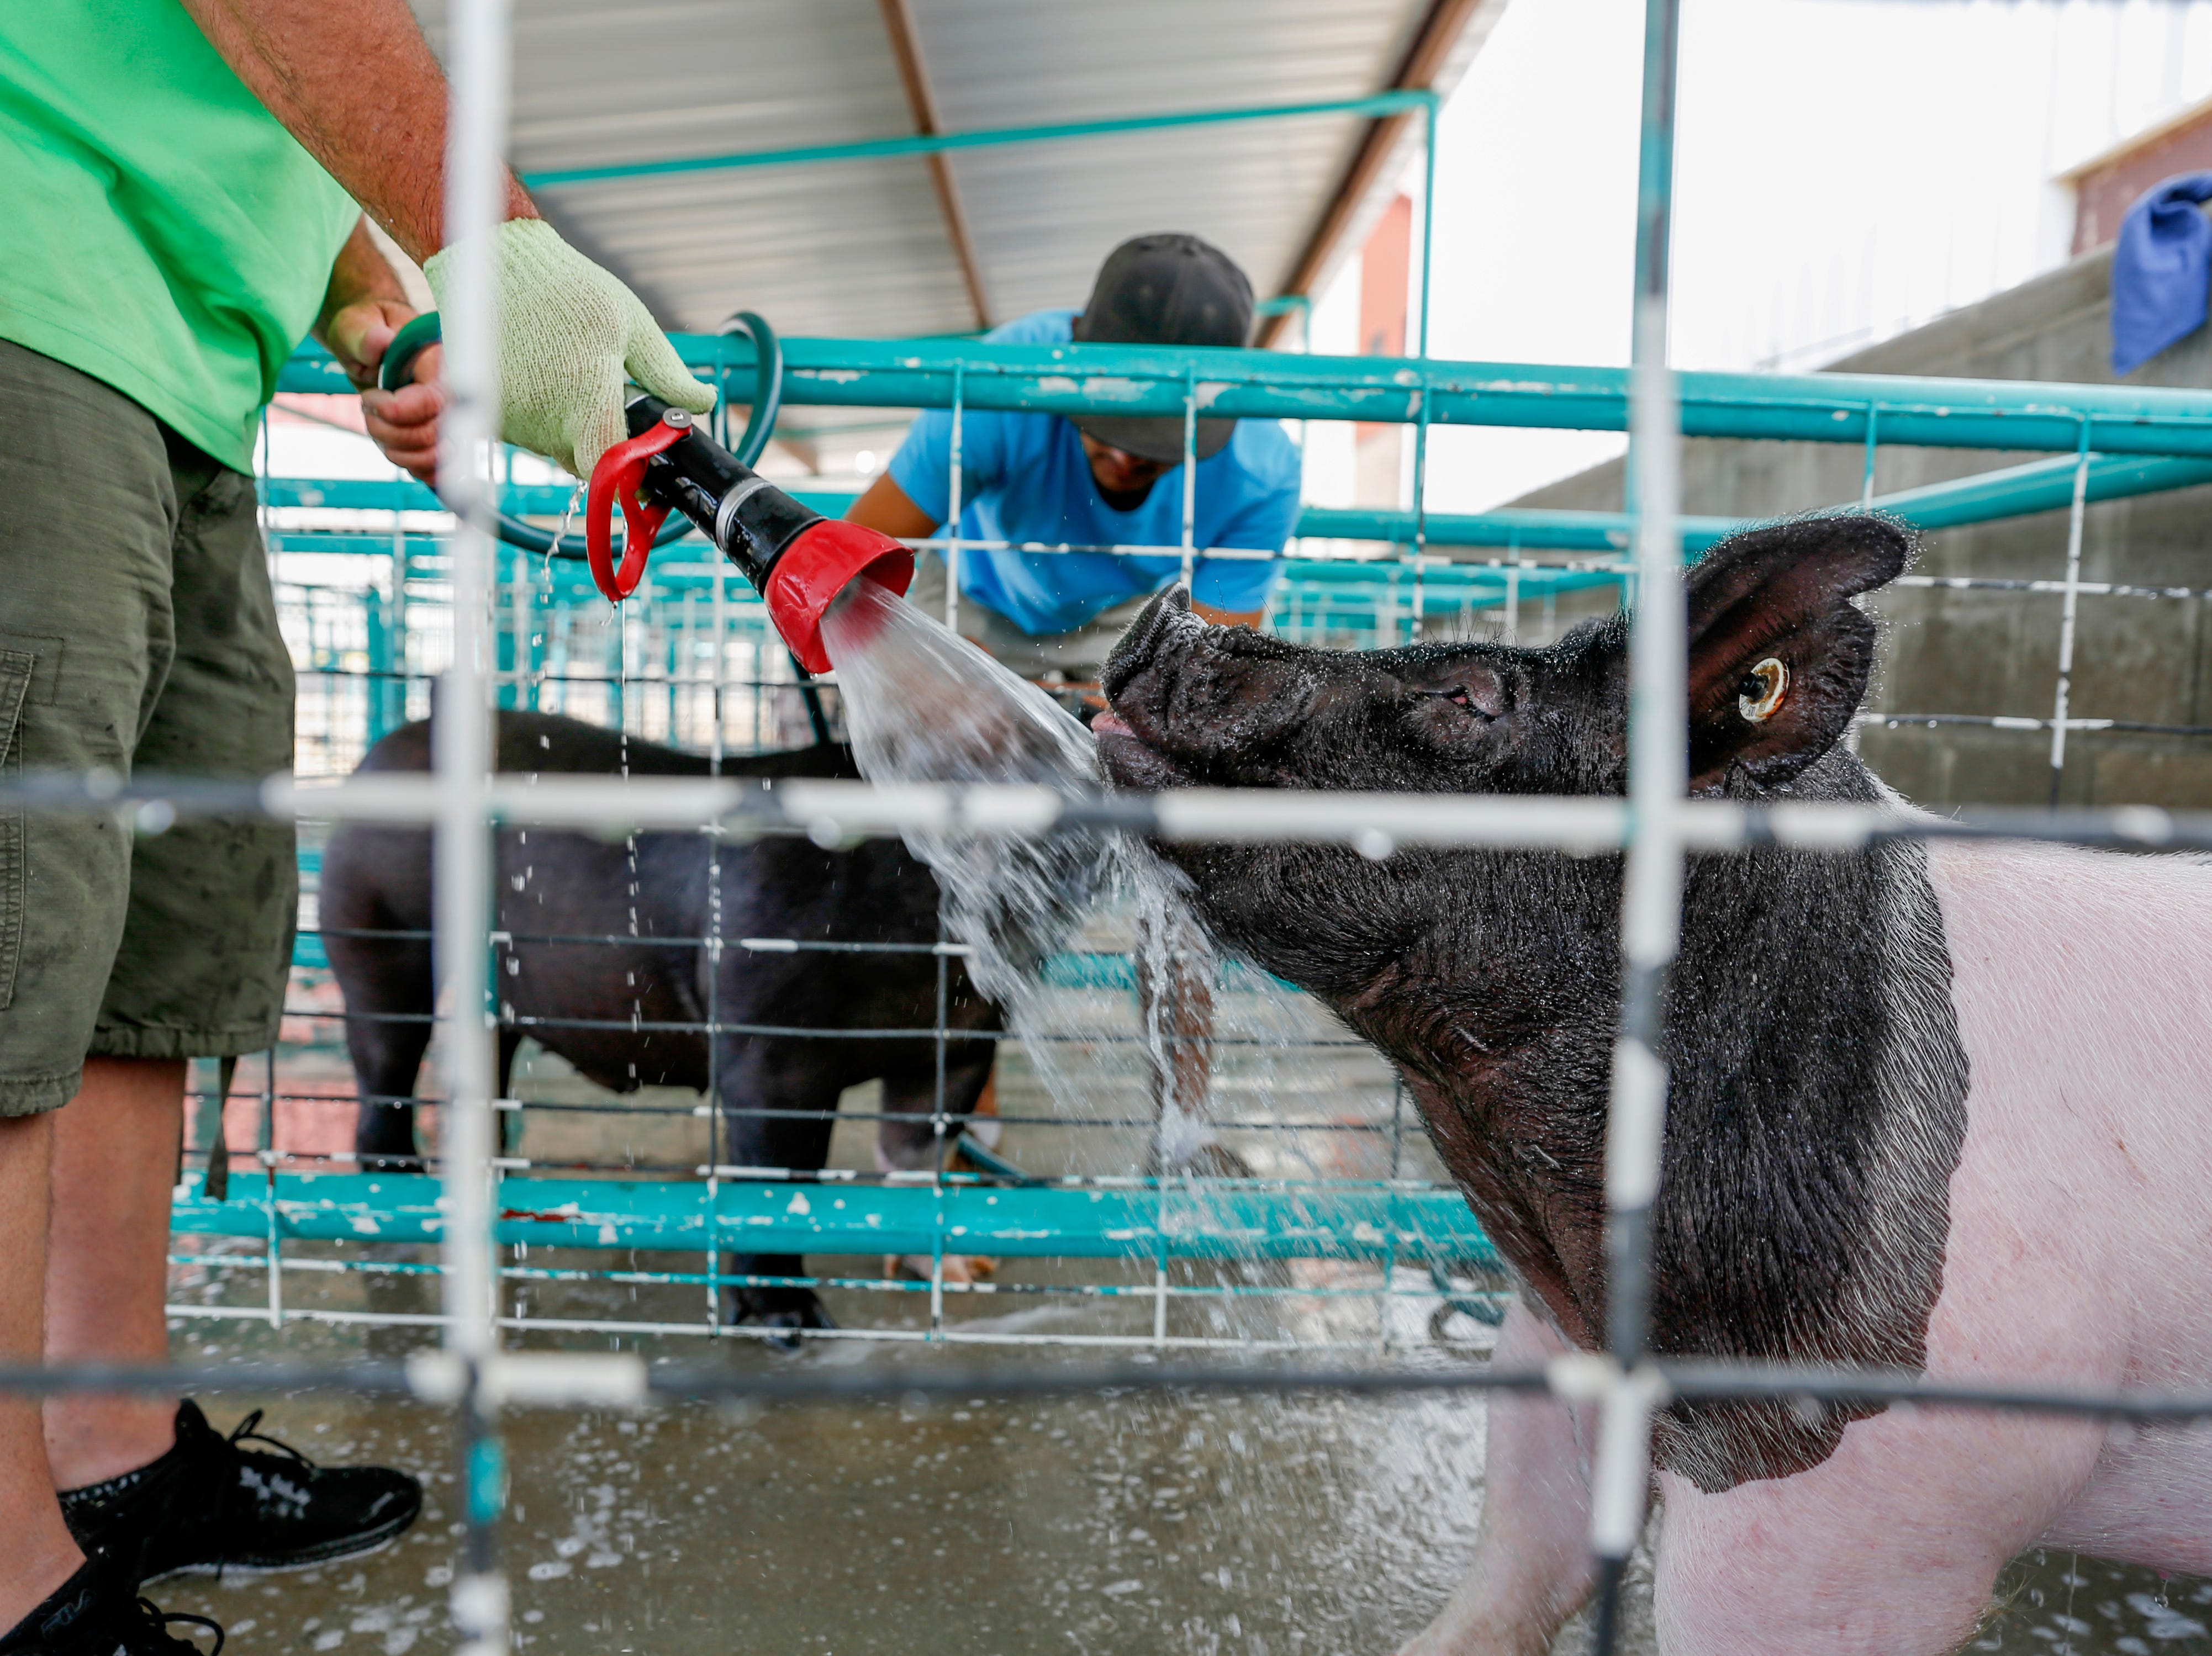 Jake Ridley, left, and Ty Velasqquez wash their pigs, Tuesday, Aug. 14, 2018 at the San Juan County Fair at McGee Park in Farmington.